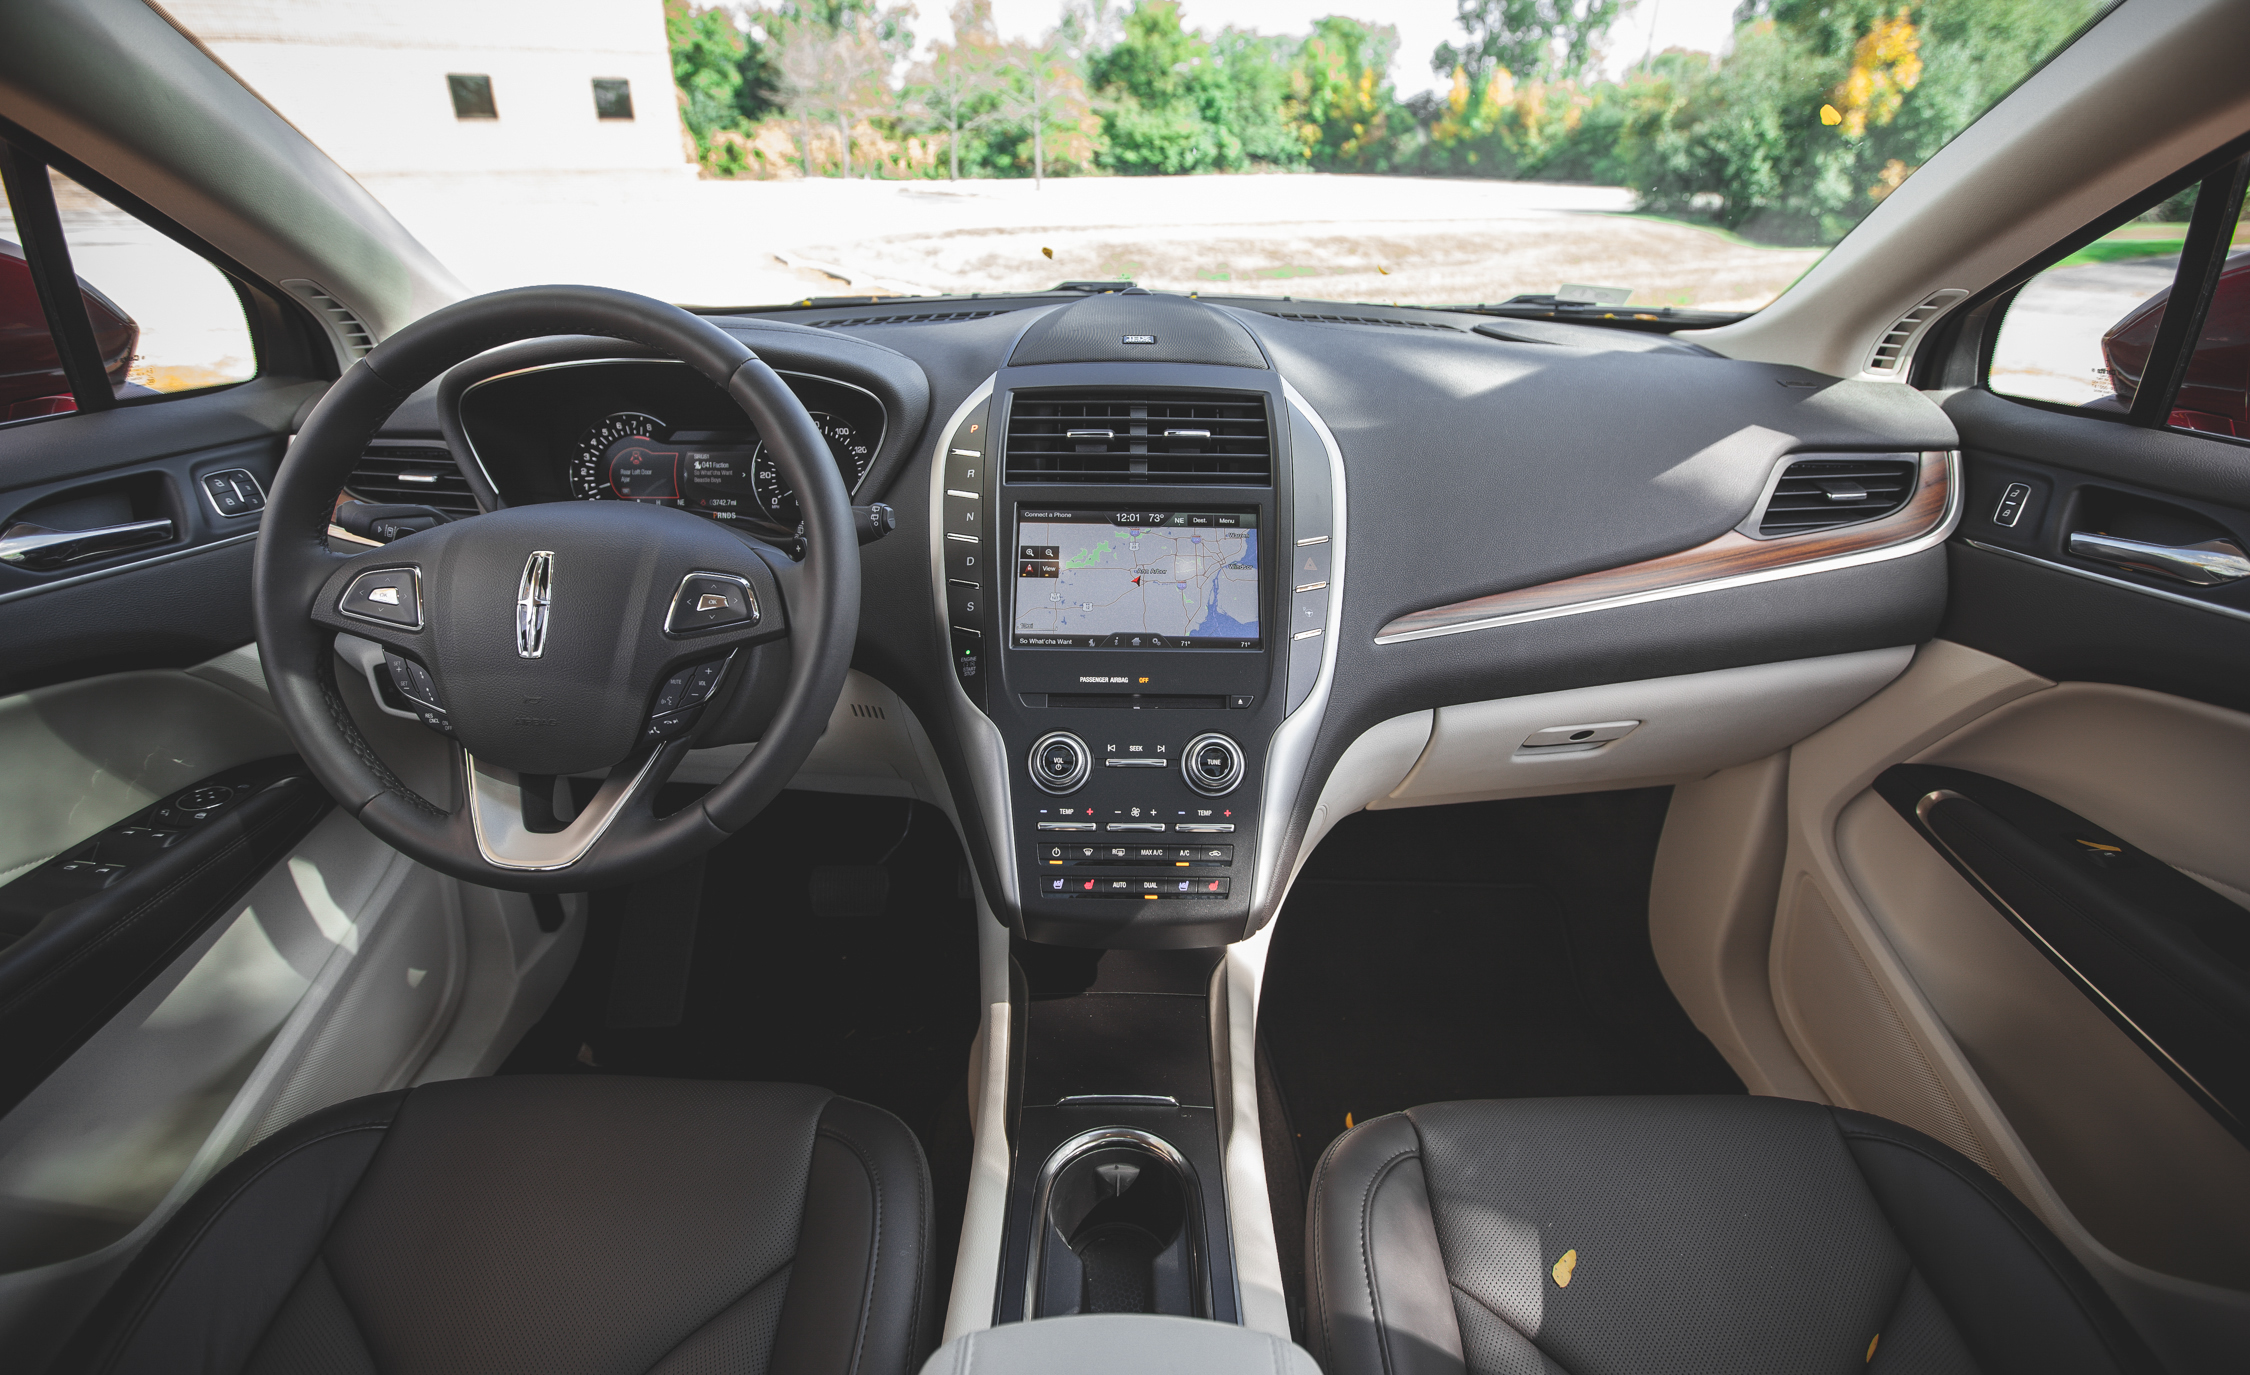 2015 Lincoln MKC 2.3 EcoBoost AWD Dashboard Interior